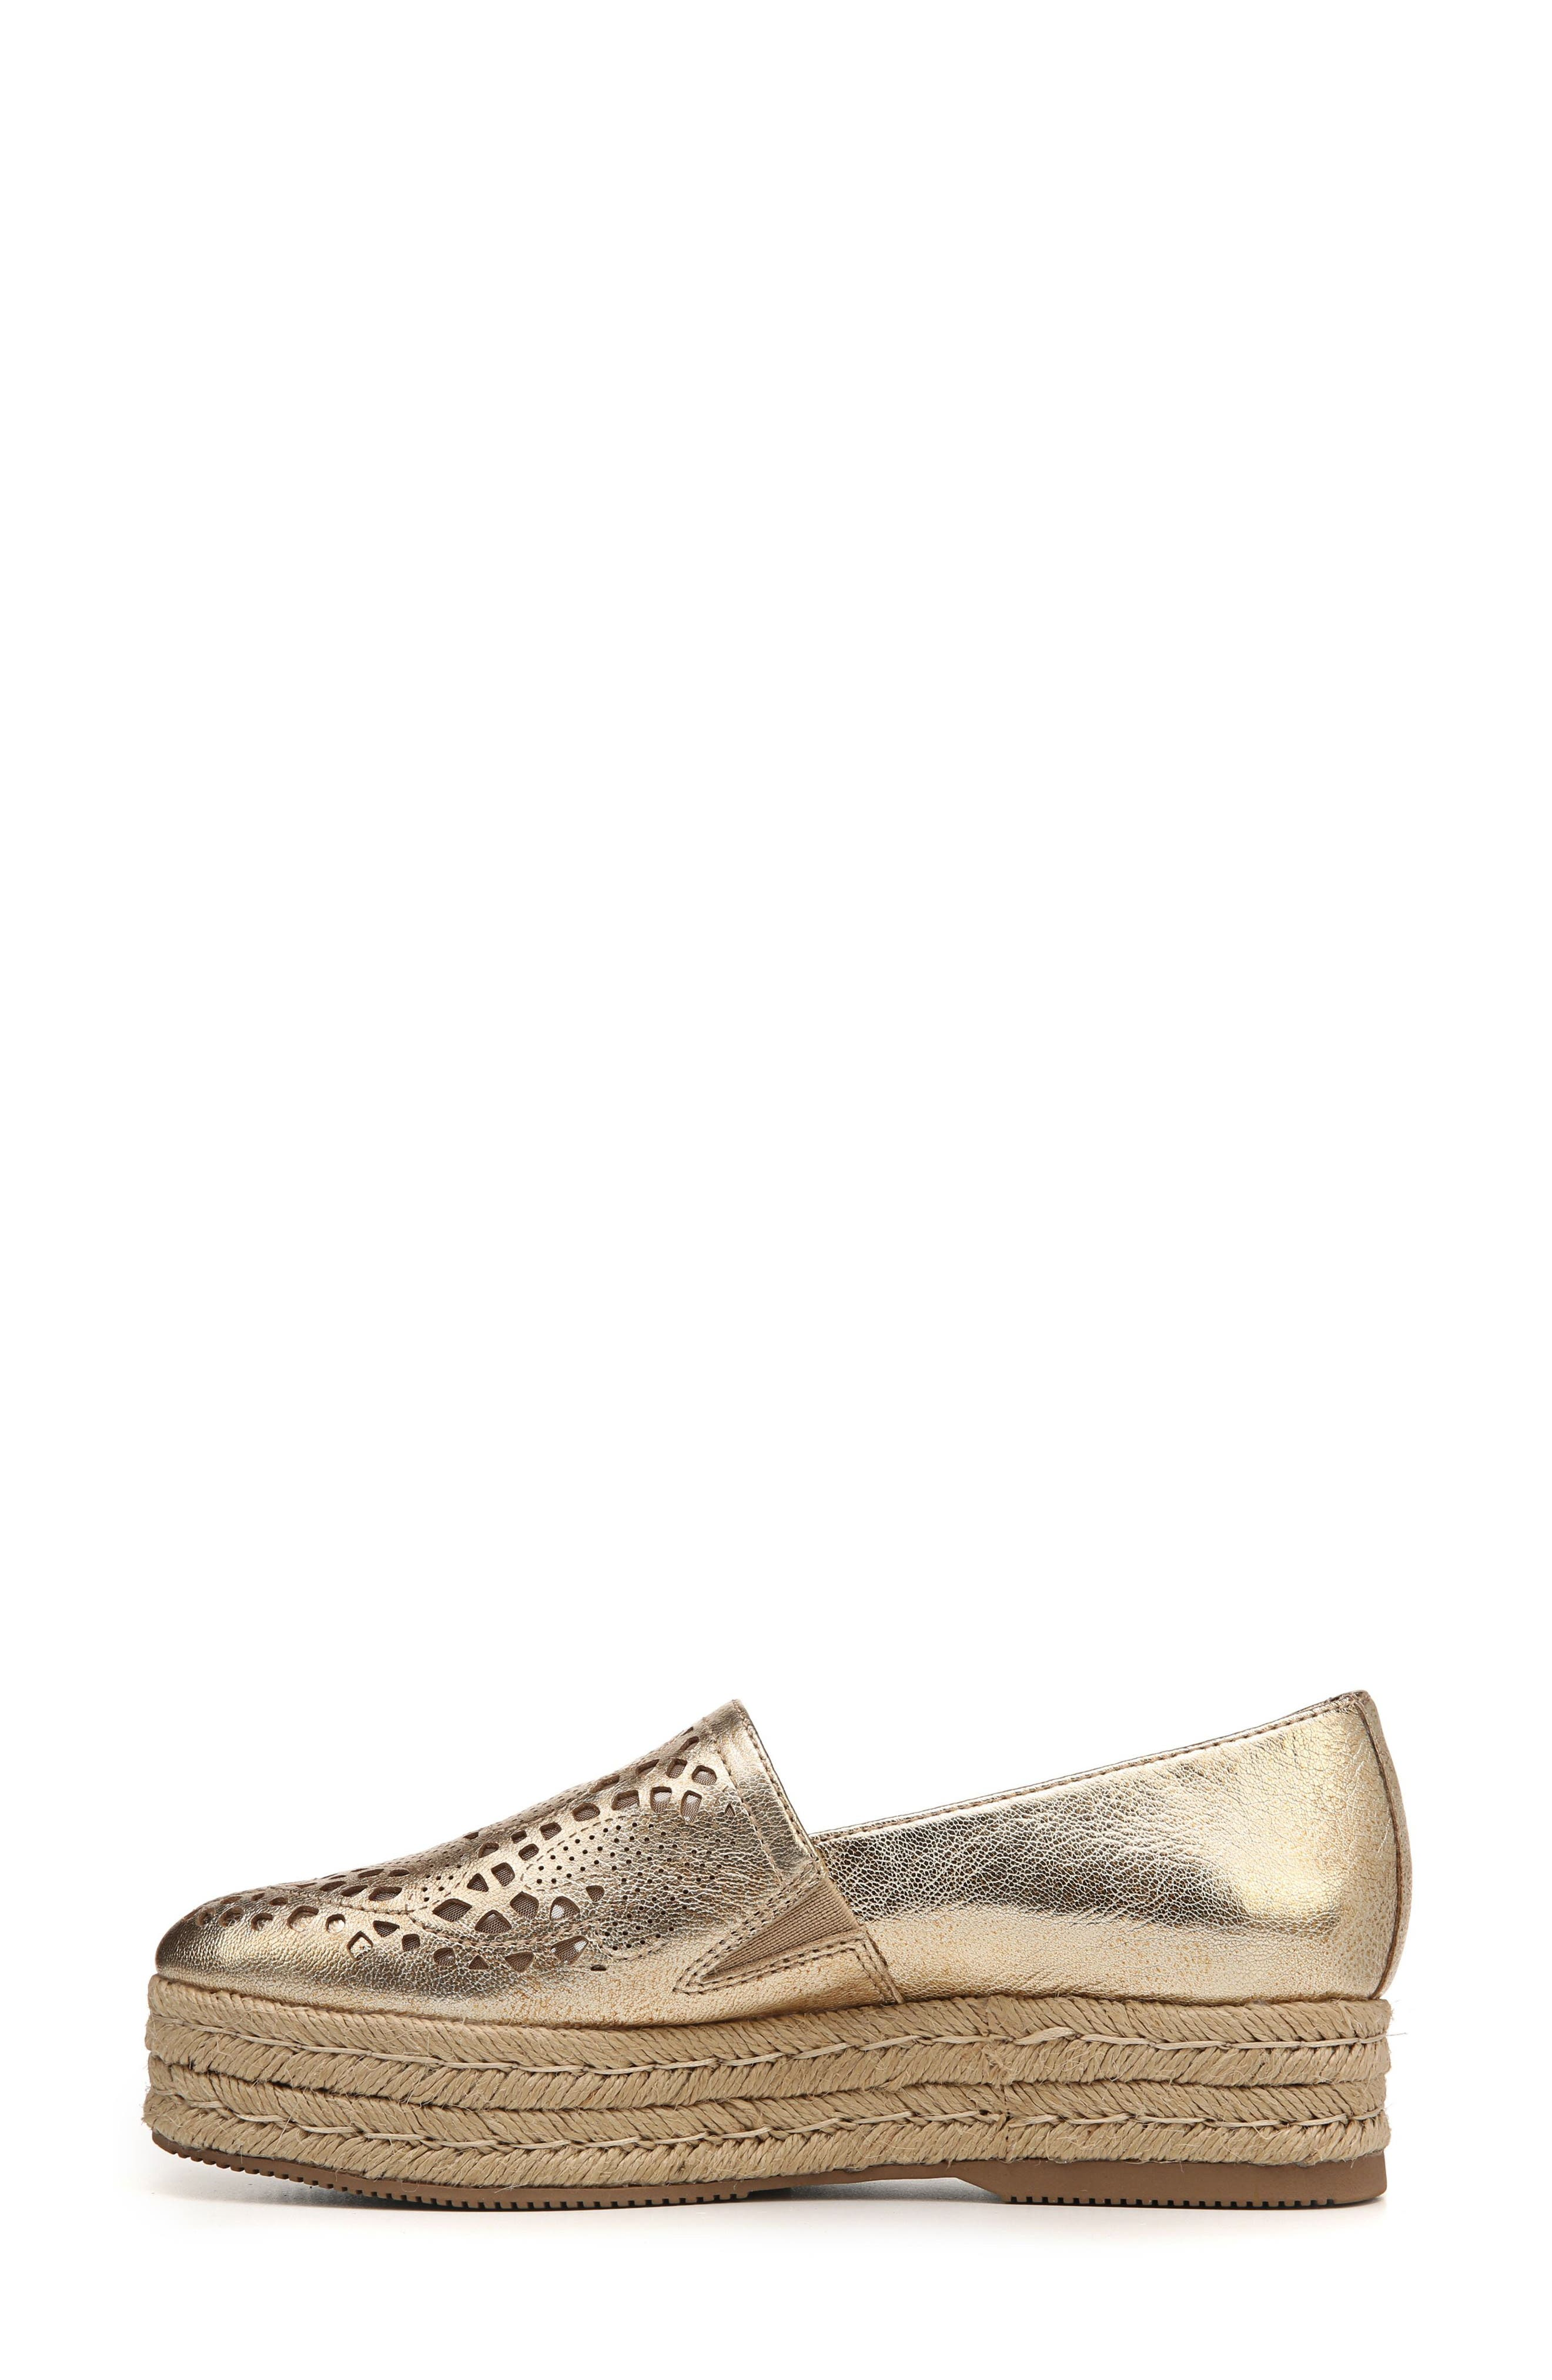 Thea Perforated Platform Espadrille,                             Alternate thumbnail 4, color,                             Platino Leather